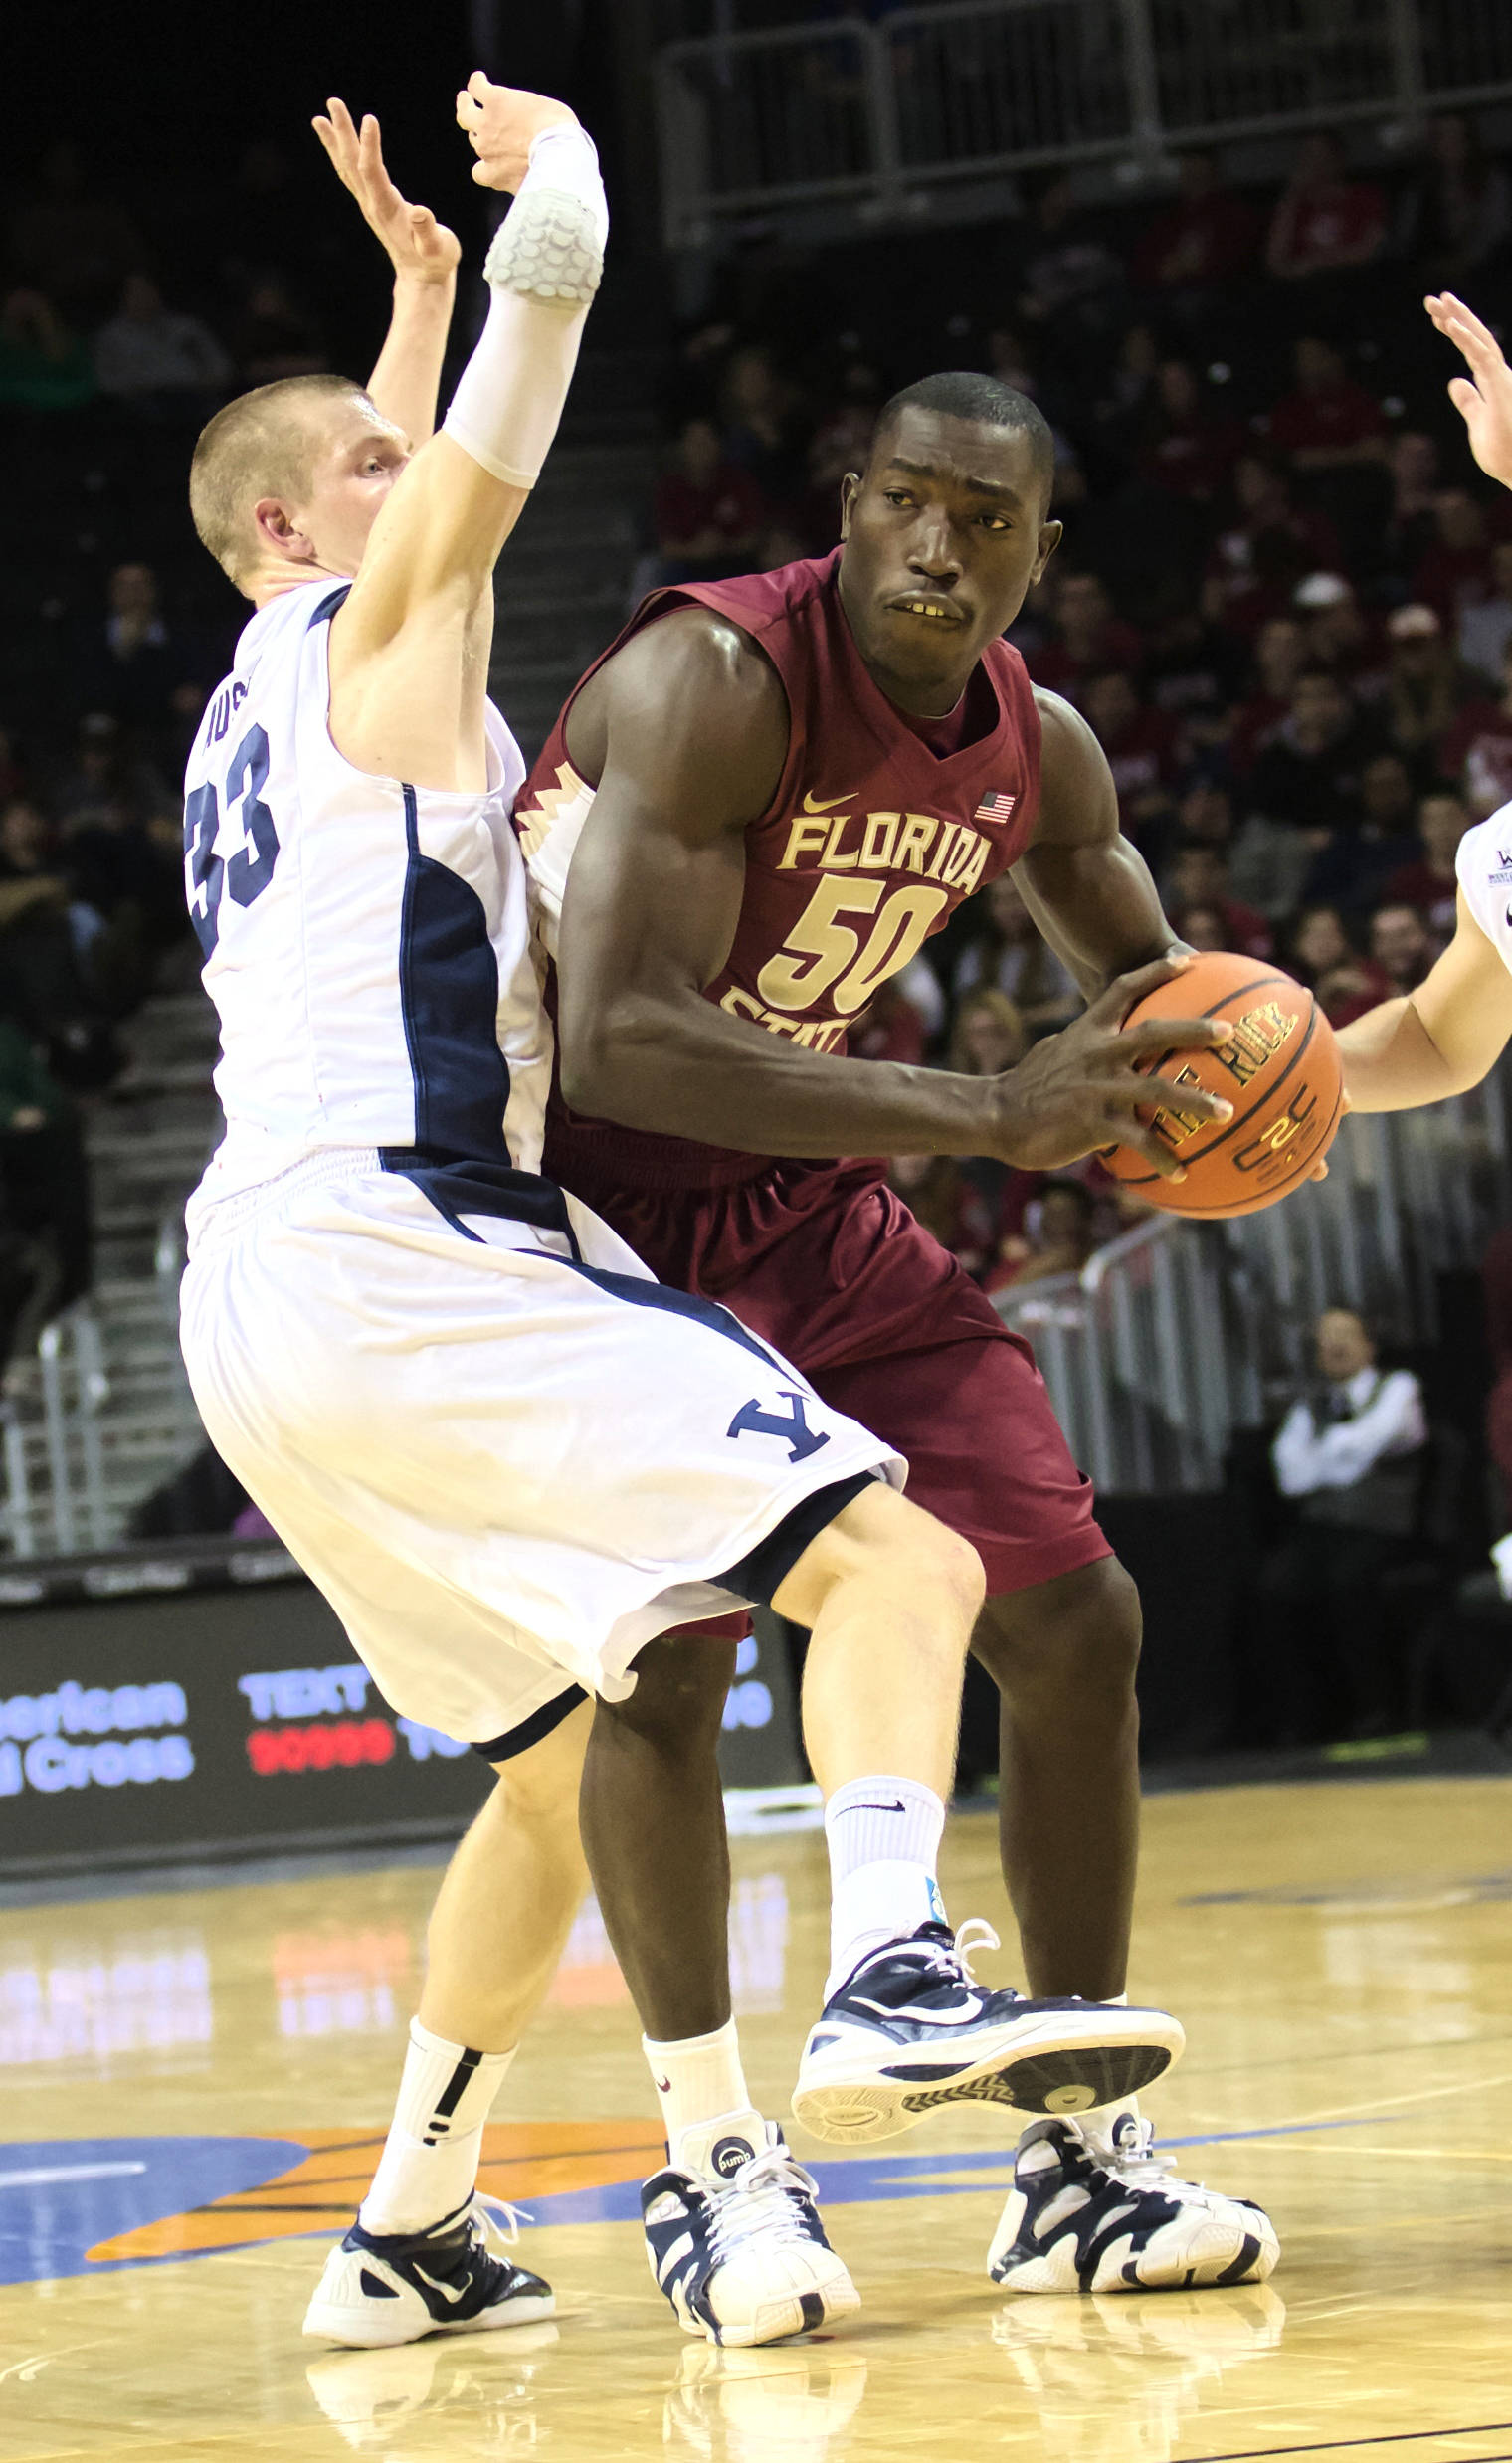 Michael Ojo (50), FSU vs BYU, 11/16/12. (Photo by Steve Musco)